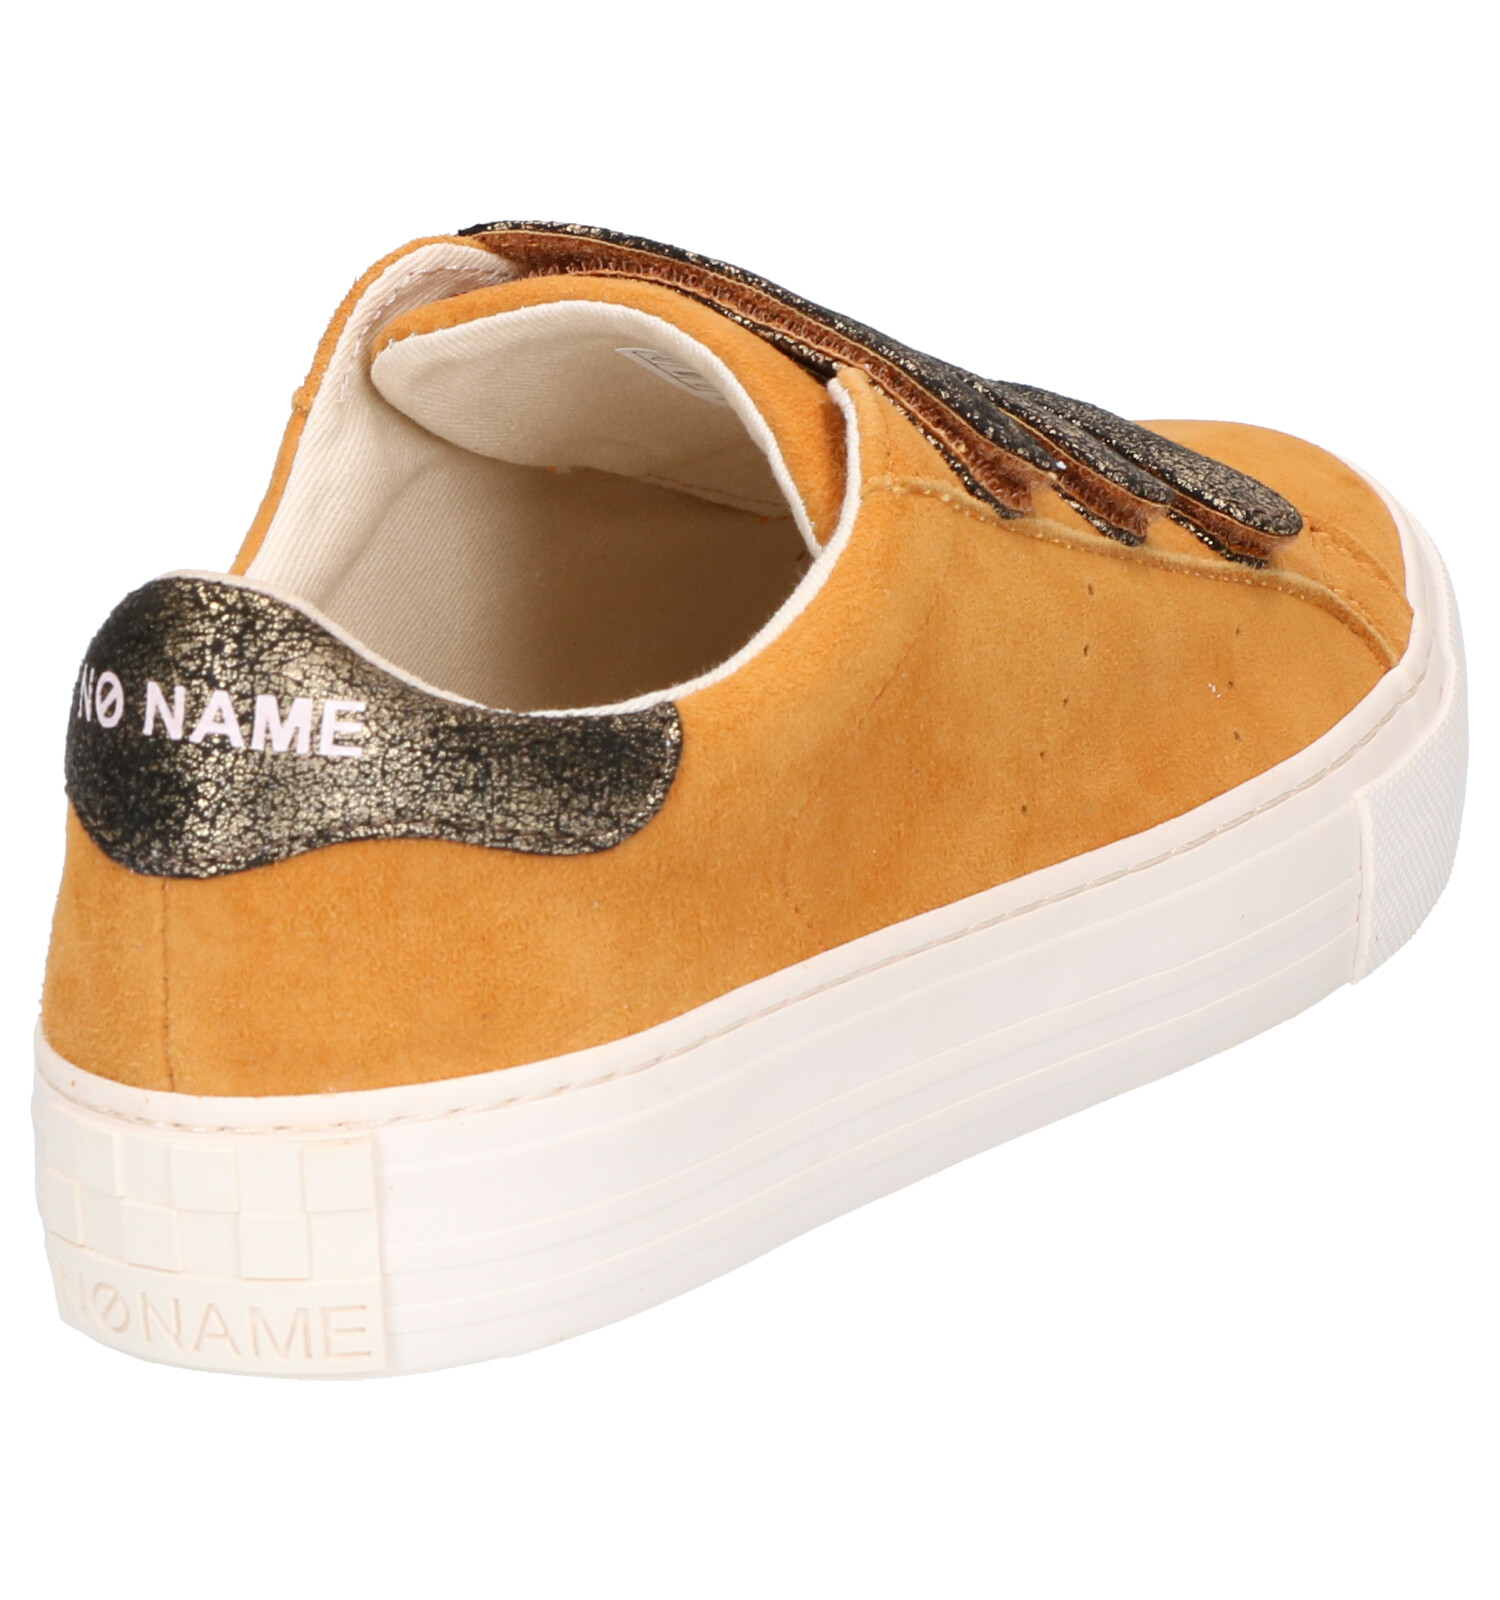 Sneakers Name Arcade No Gele Name Arcade No c3JlK1TF